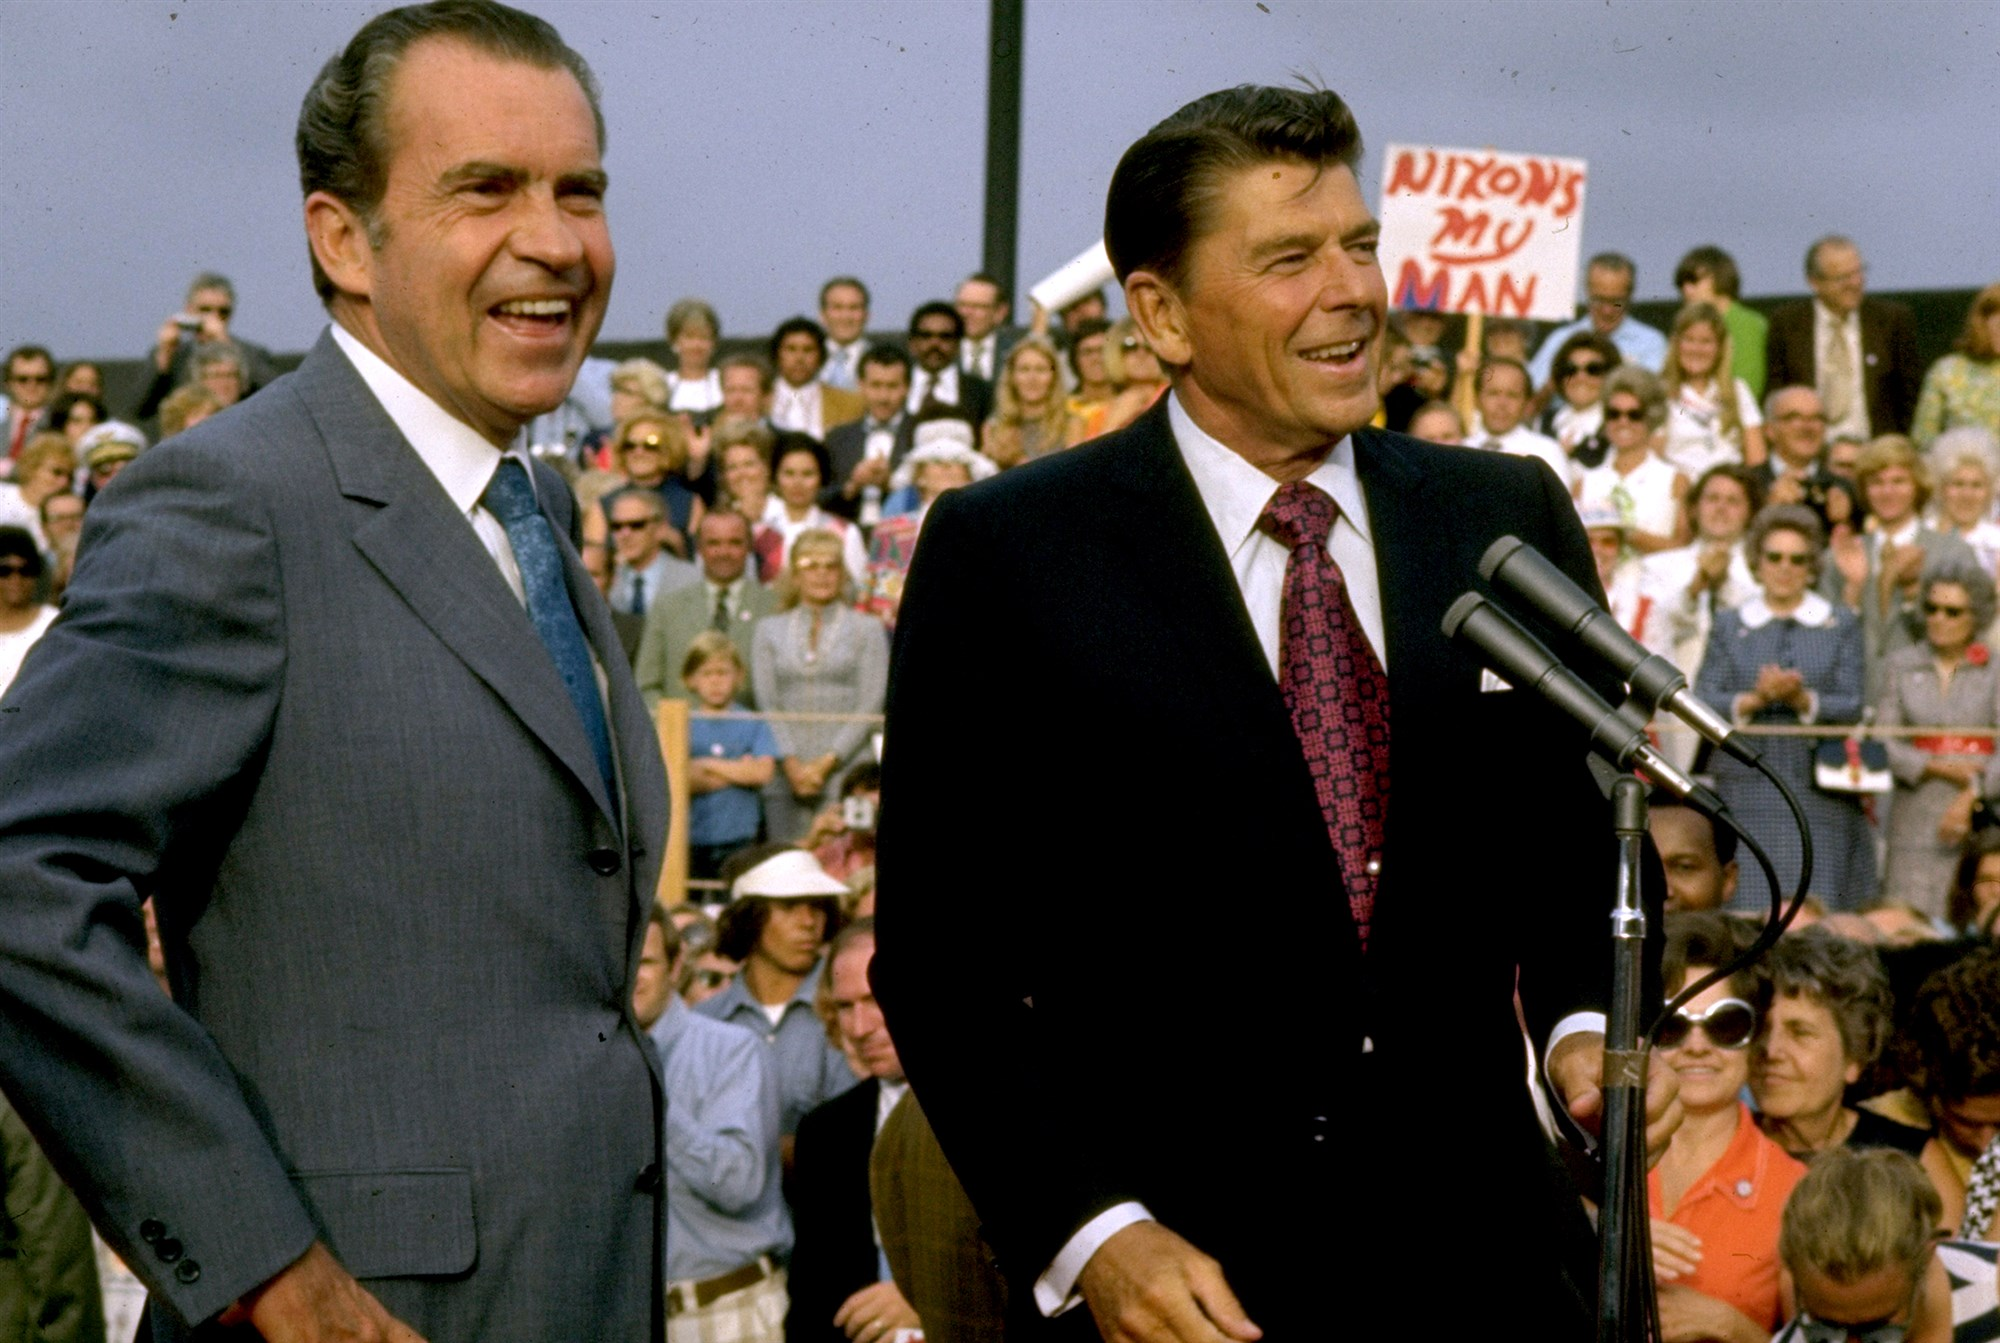 Richard Nixon and Ronald Reagan campaign in 1972. || Photo credit to Dirck Halstead from The LIFE Images Collection via Getty Images file